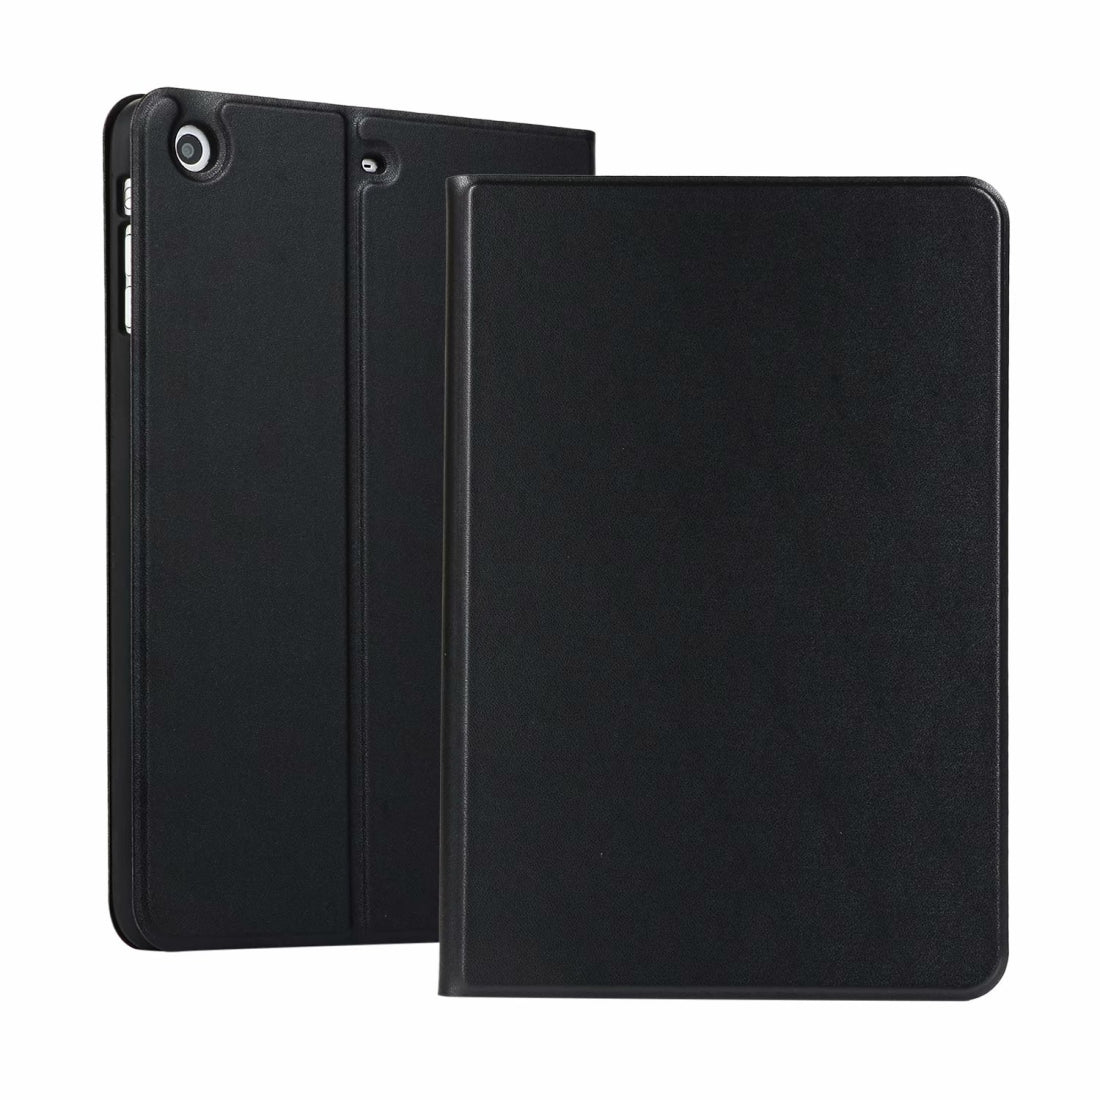 left and right solid color elastic leather case for iPad Mini 1 / Mini 2 / Mini 3  with stand with sleep function, TPU soft shell bottom case(Black)